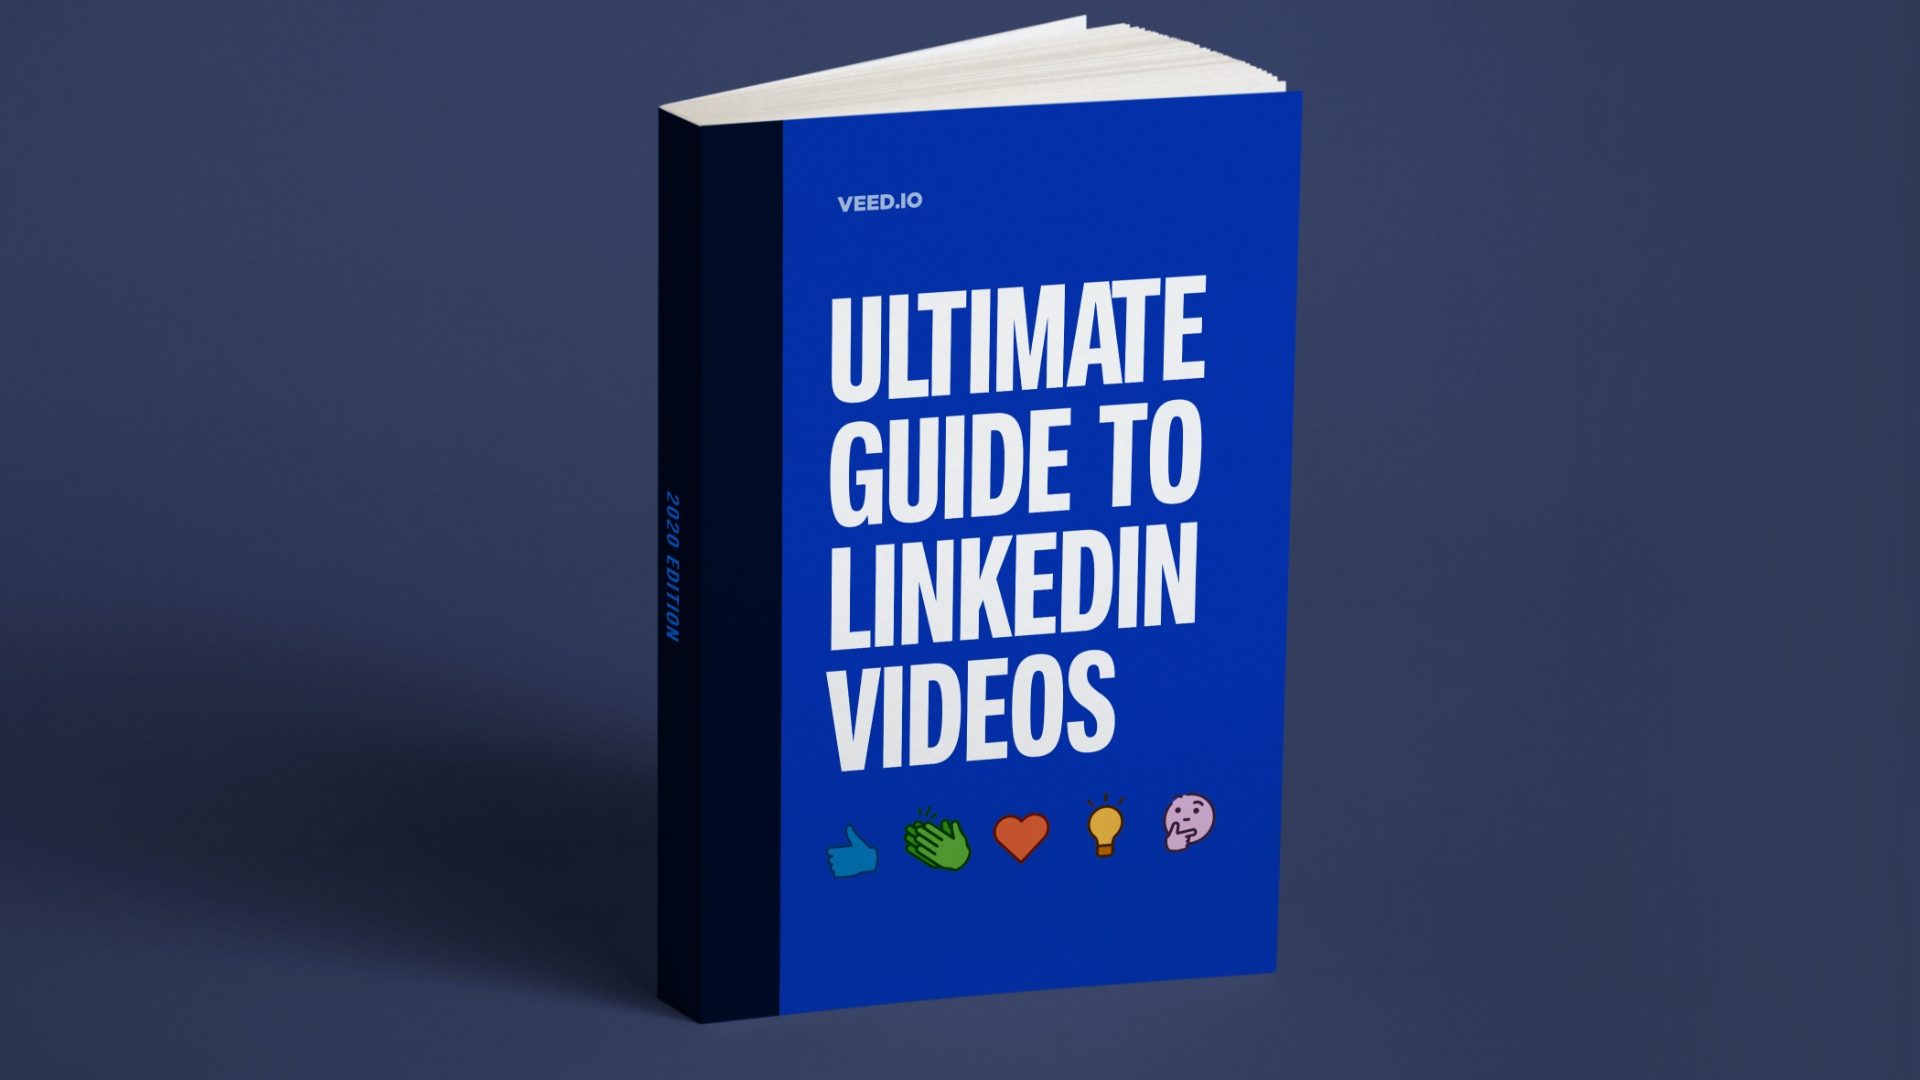 Your Ultimate Guide to LinkedIn Videos